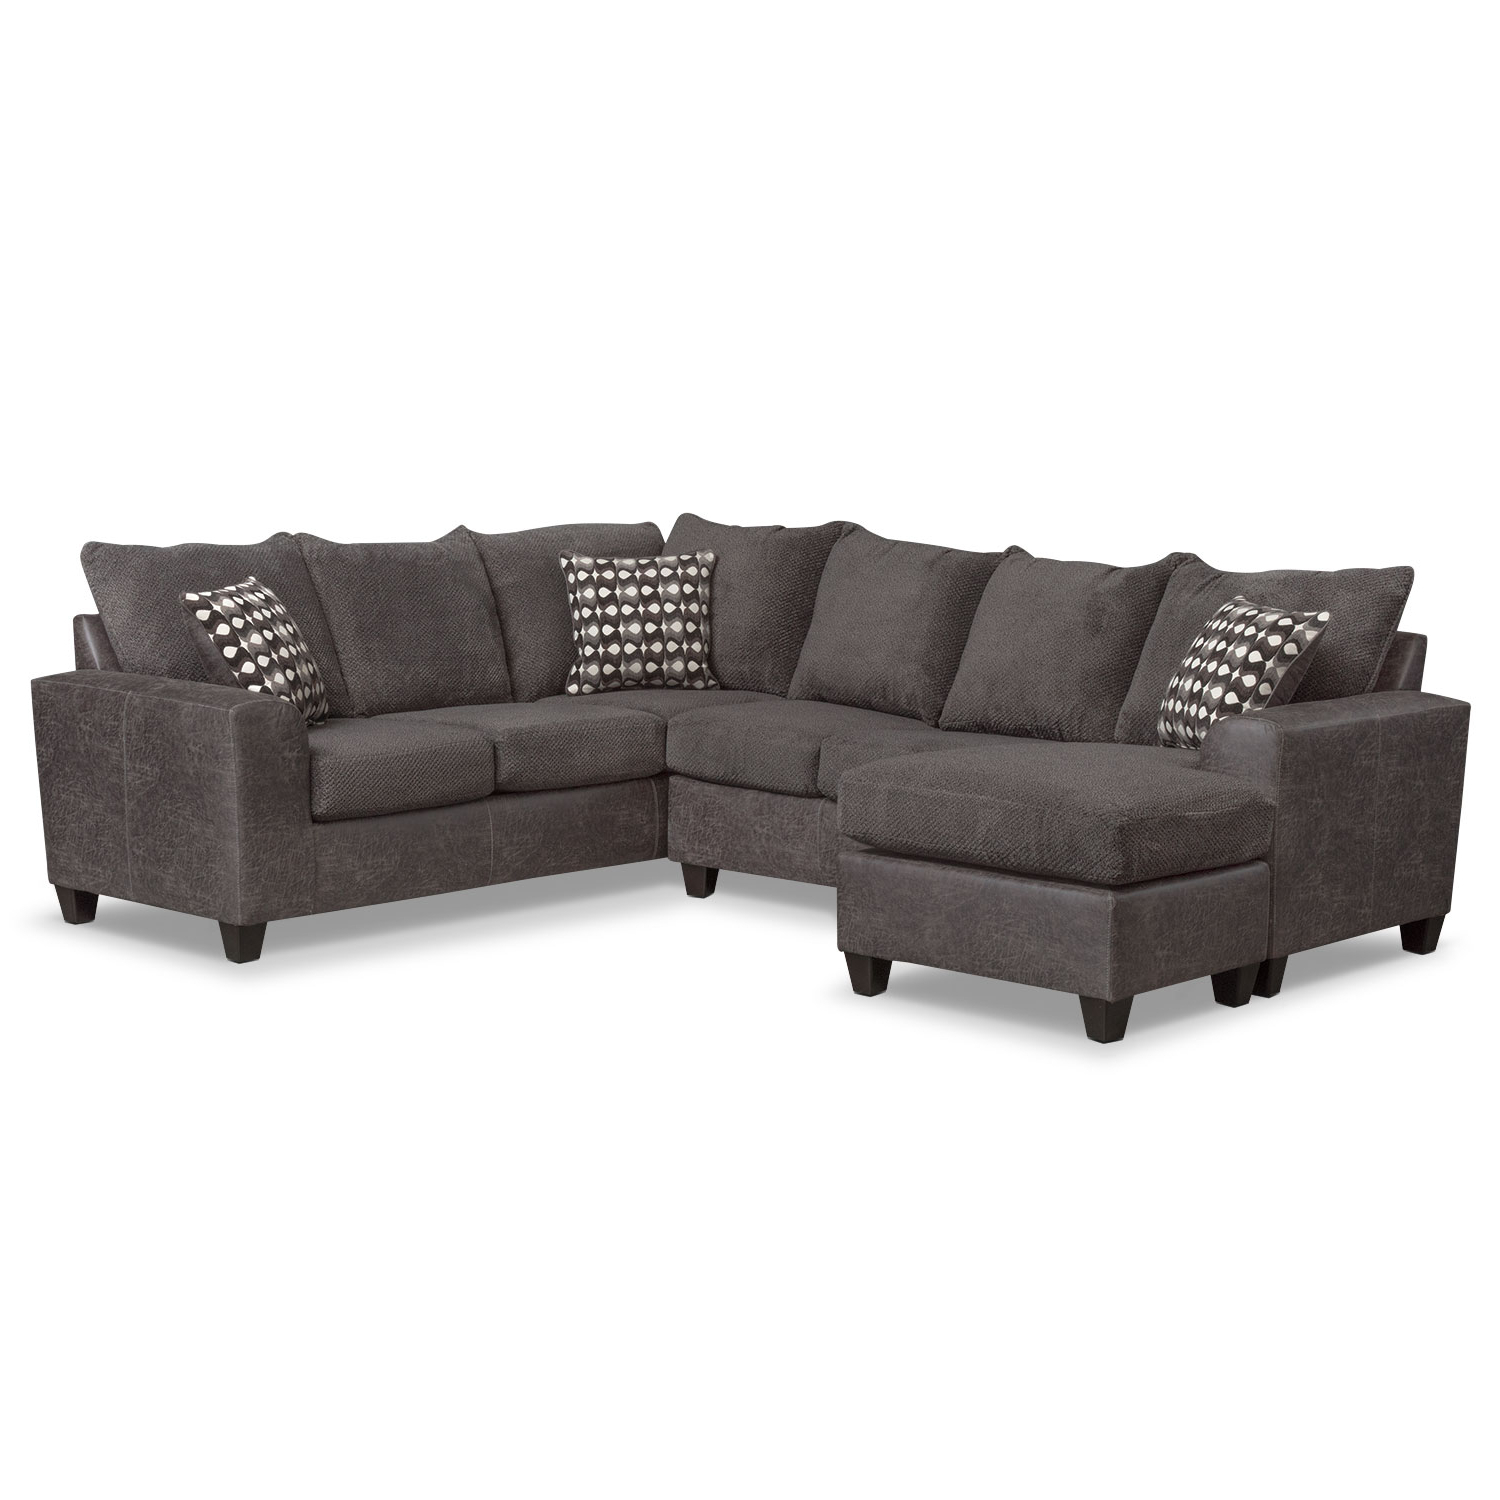 Sleeper Sectional With Chaise – Tidex For Latest Lucy Dark Grey 2 Piece Sleeper Sectionals With Laf Chaise (View 17 of 20)